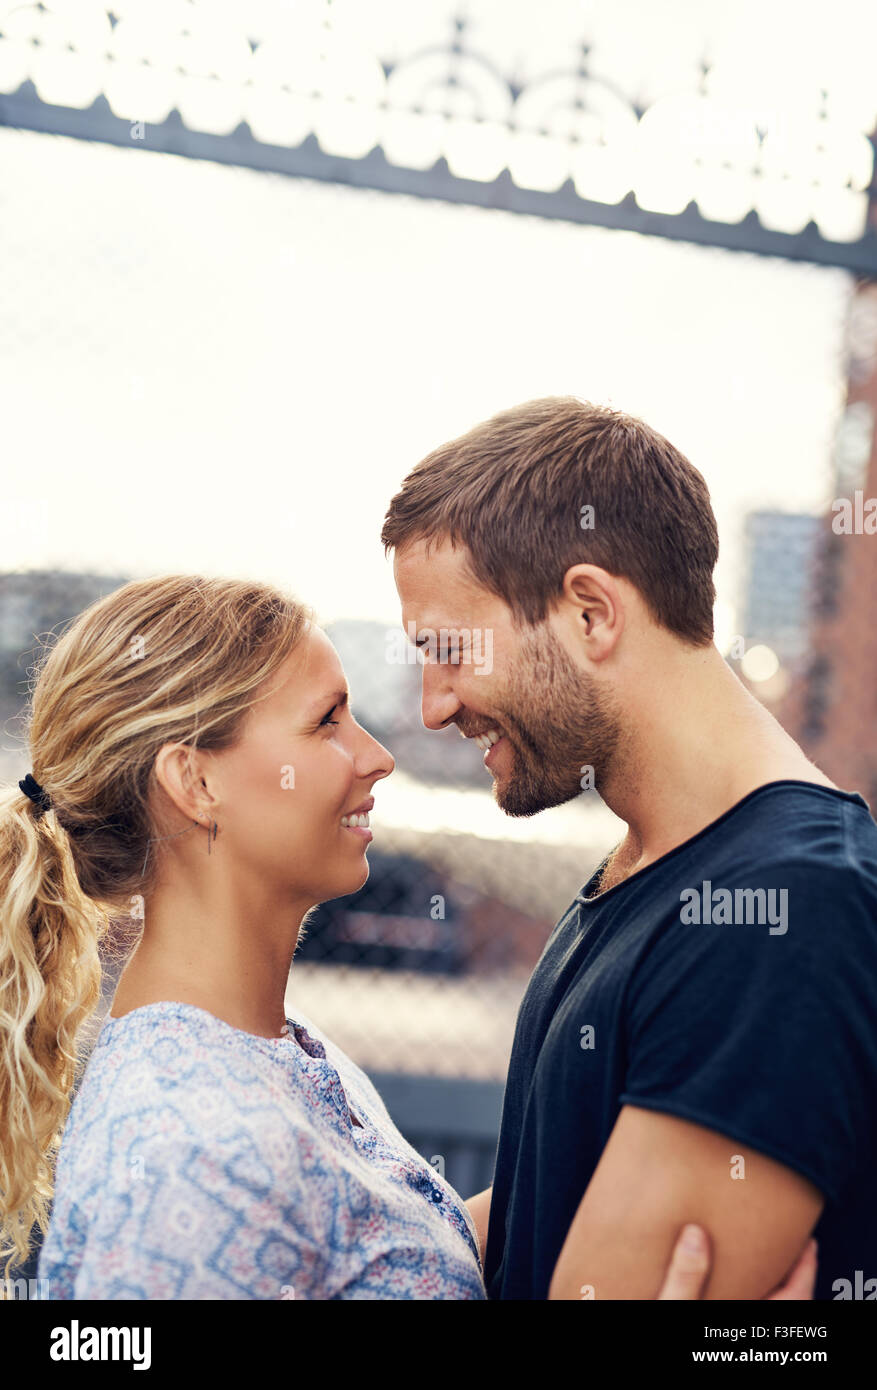 White Loving Couple In The City, Looking In Each Others Eyes - Stock Image